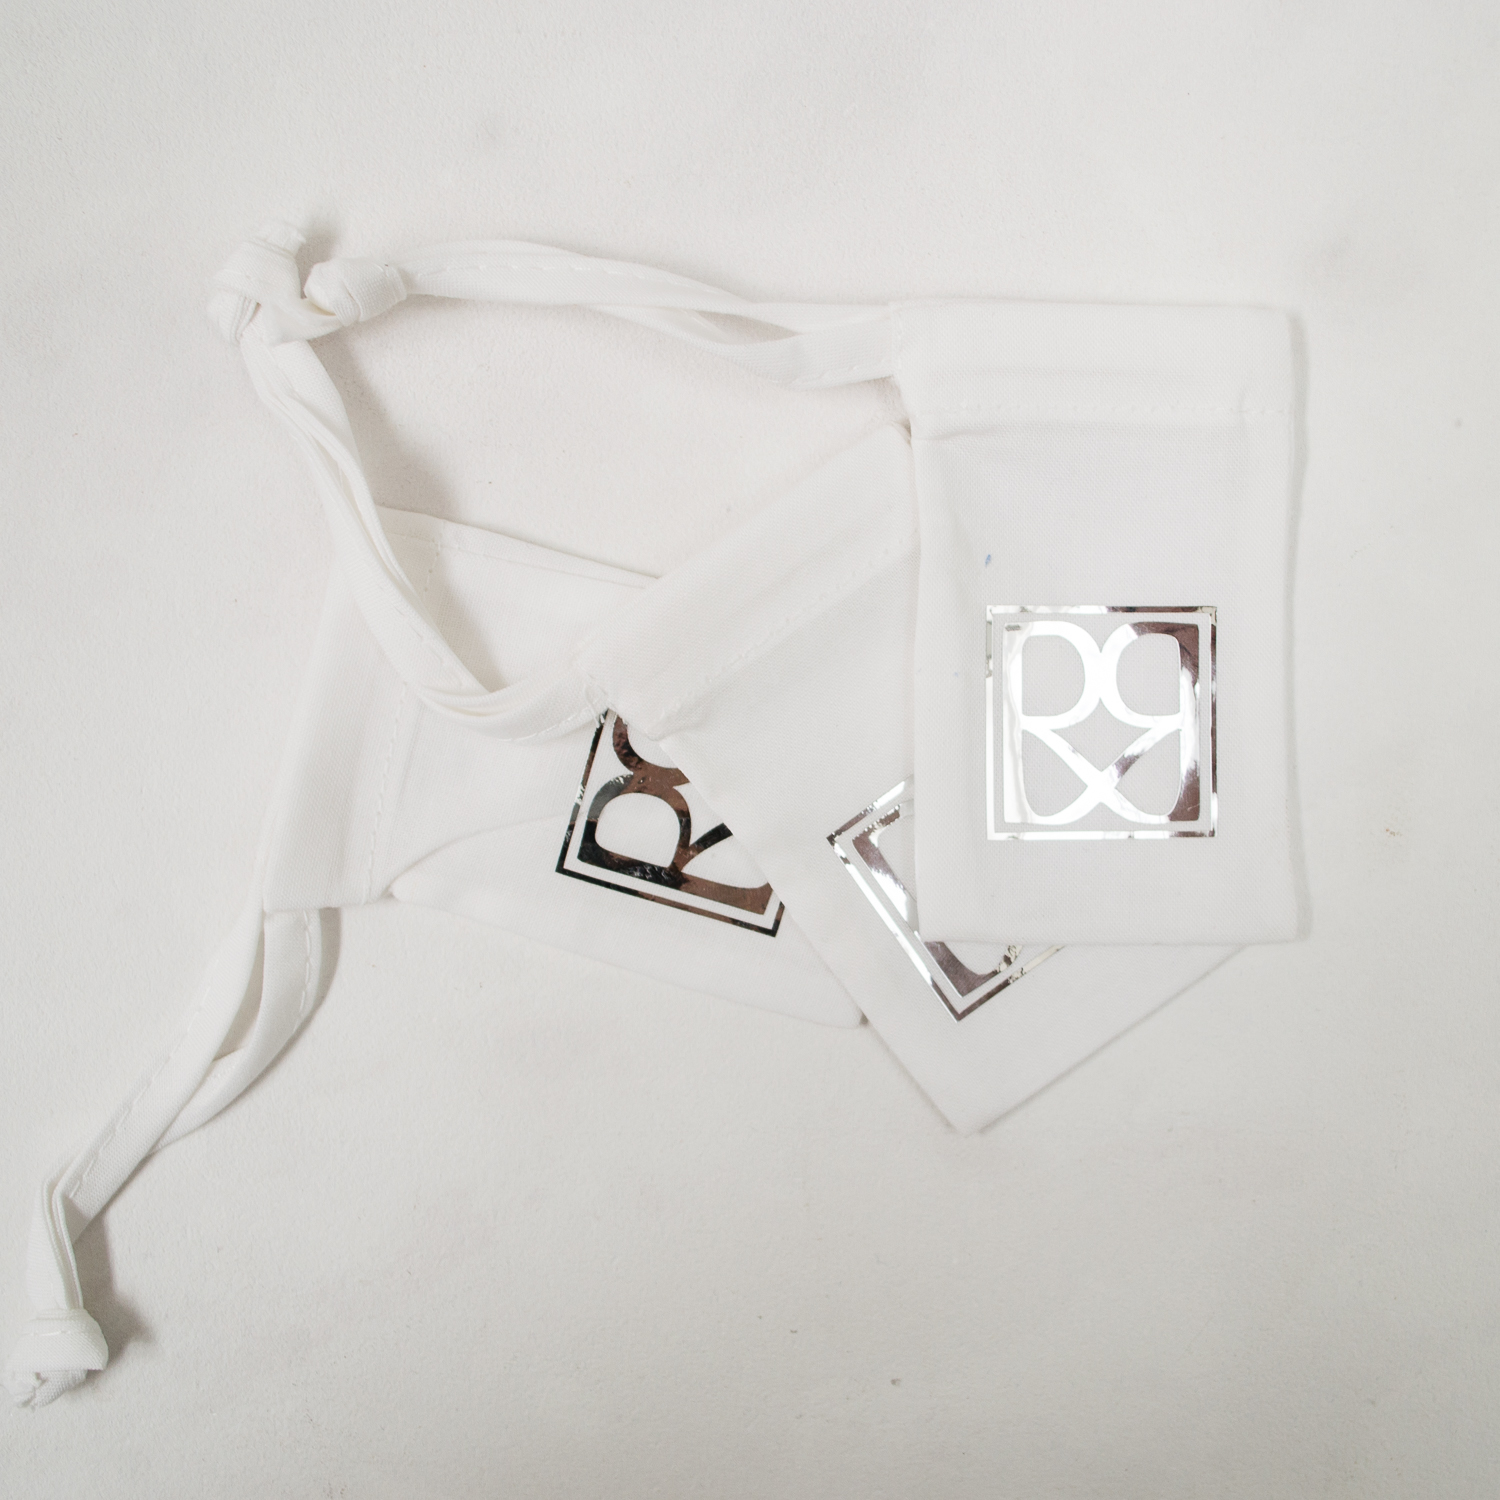 MollyAndTom_Photography_Packaging_Branding_Shipping_Supplies_Online_Store_Jewellery